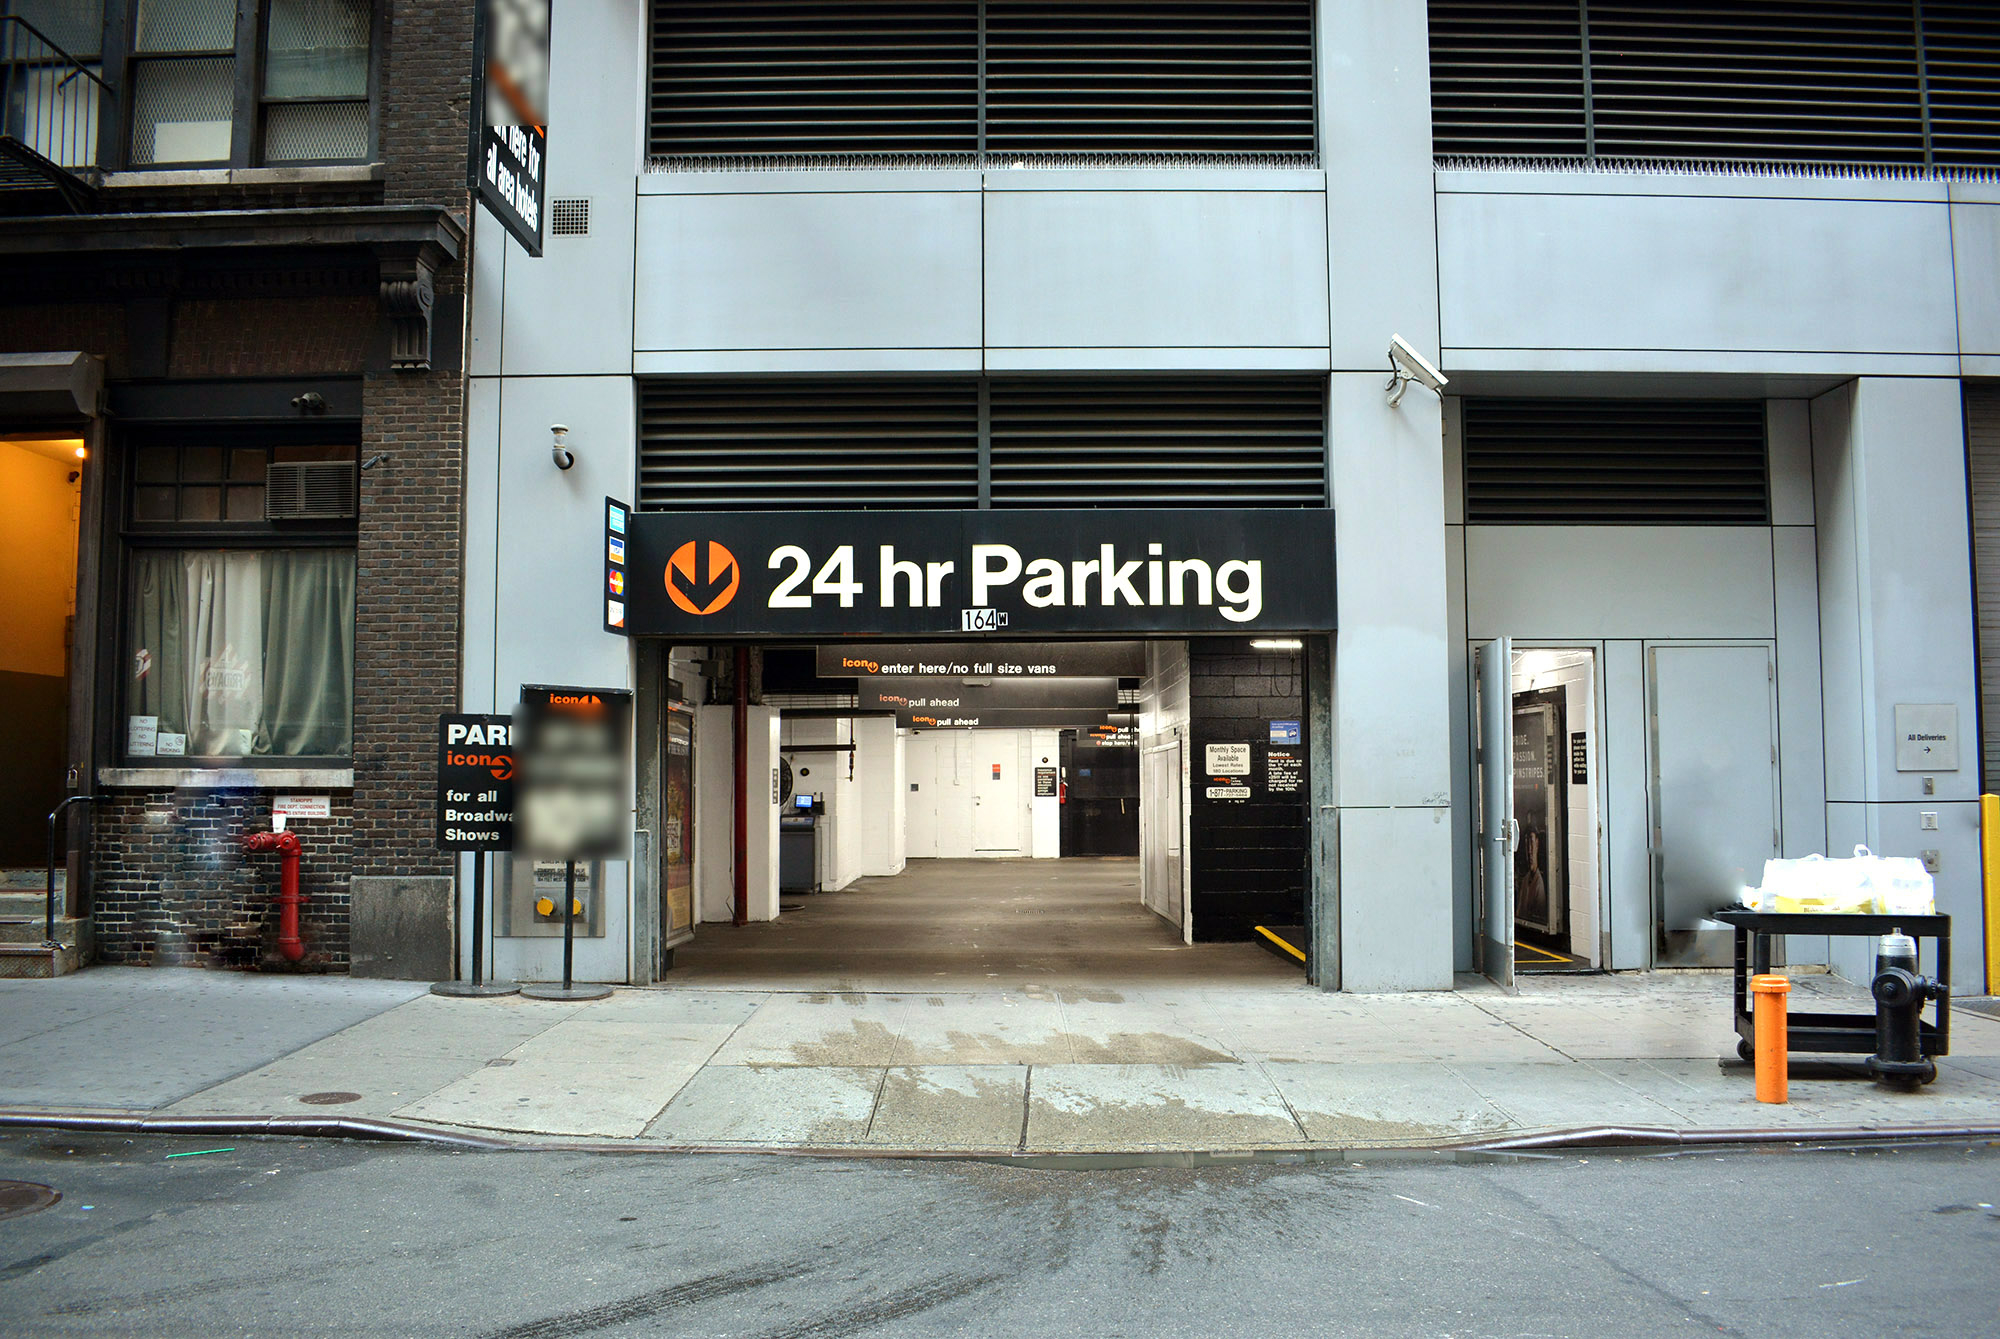 5 Simple Steps for Finding Discounted NYC Parking Coupons